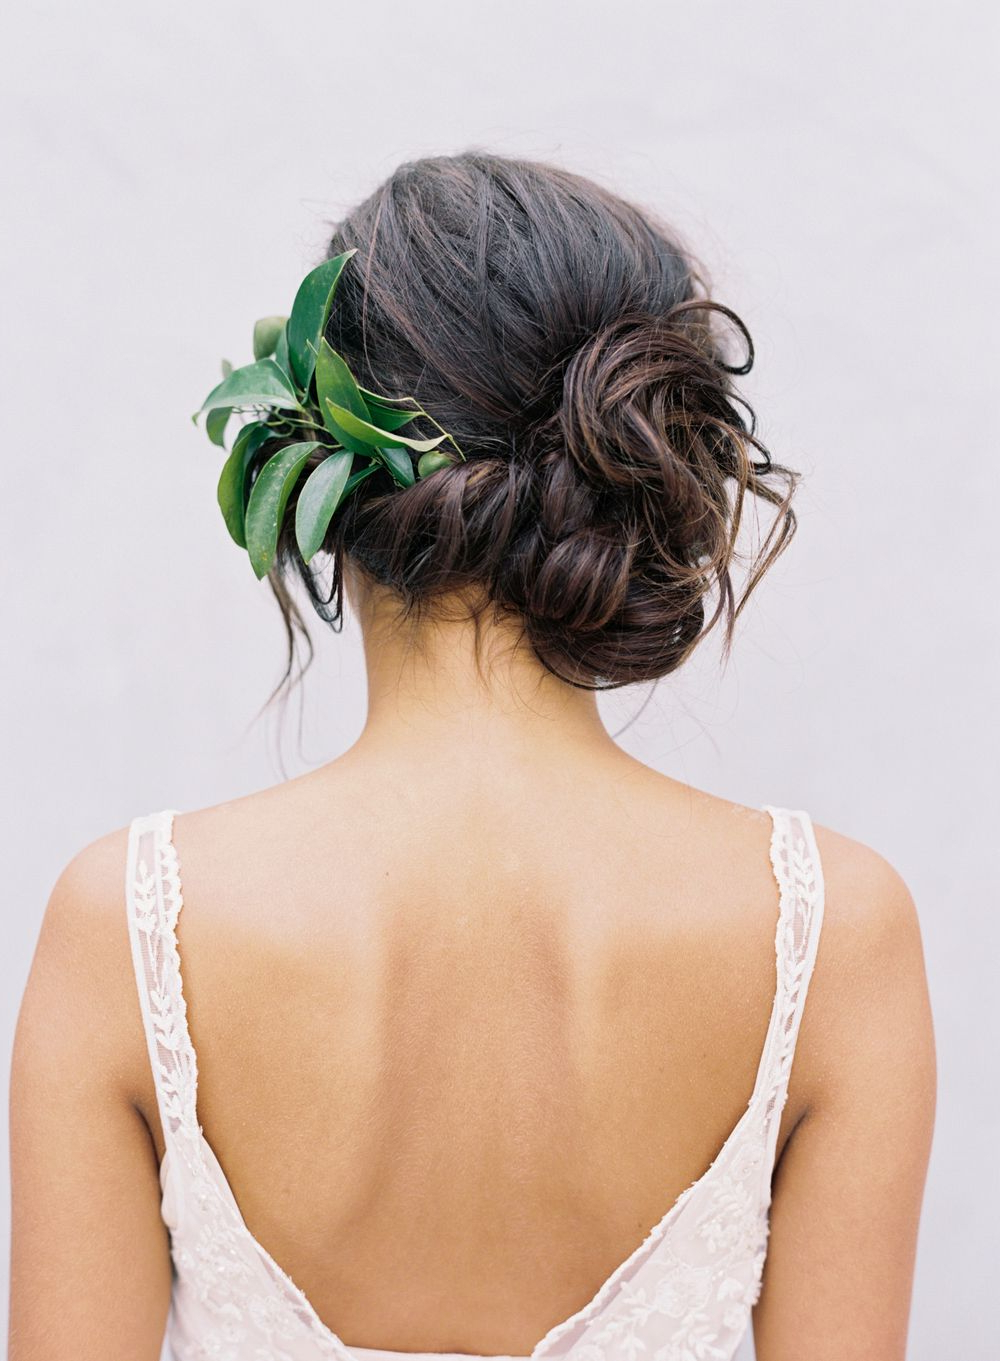 A Classic Wedding Updo, Loose Side Bun, Romantic Side Swept Updo Inside Favorite Side Bun Prom Hairstyles With Black Feathers (View 12 of 20)